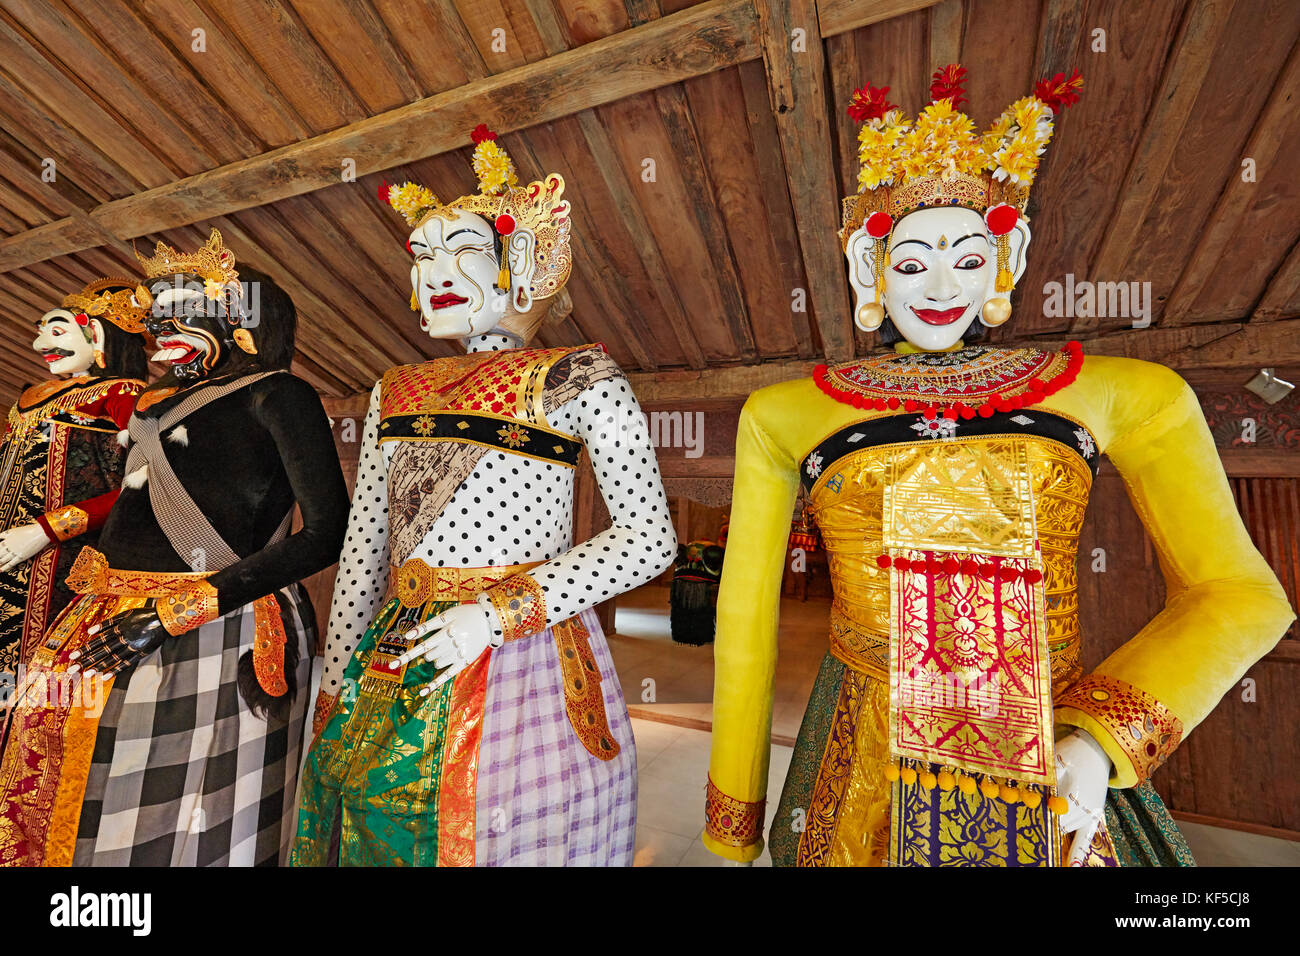 Barong Landung, traditional Balinese puppets. Setia Darma House of Masks and Puppets, Mas, Ubud, Bali, Indonesia. - Stock Image